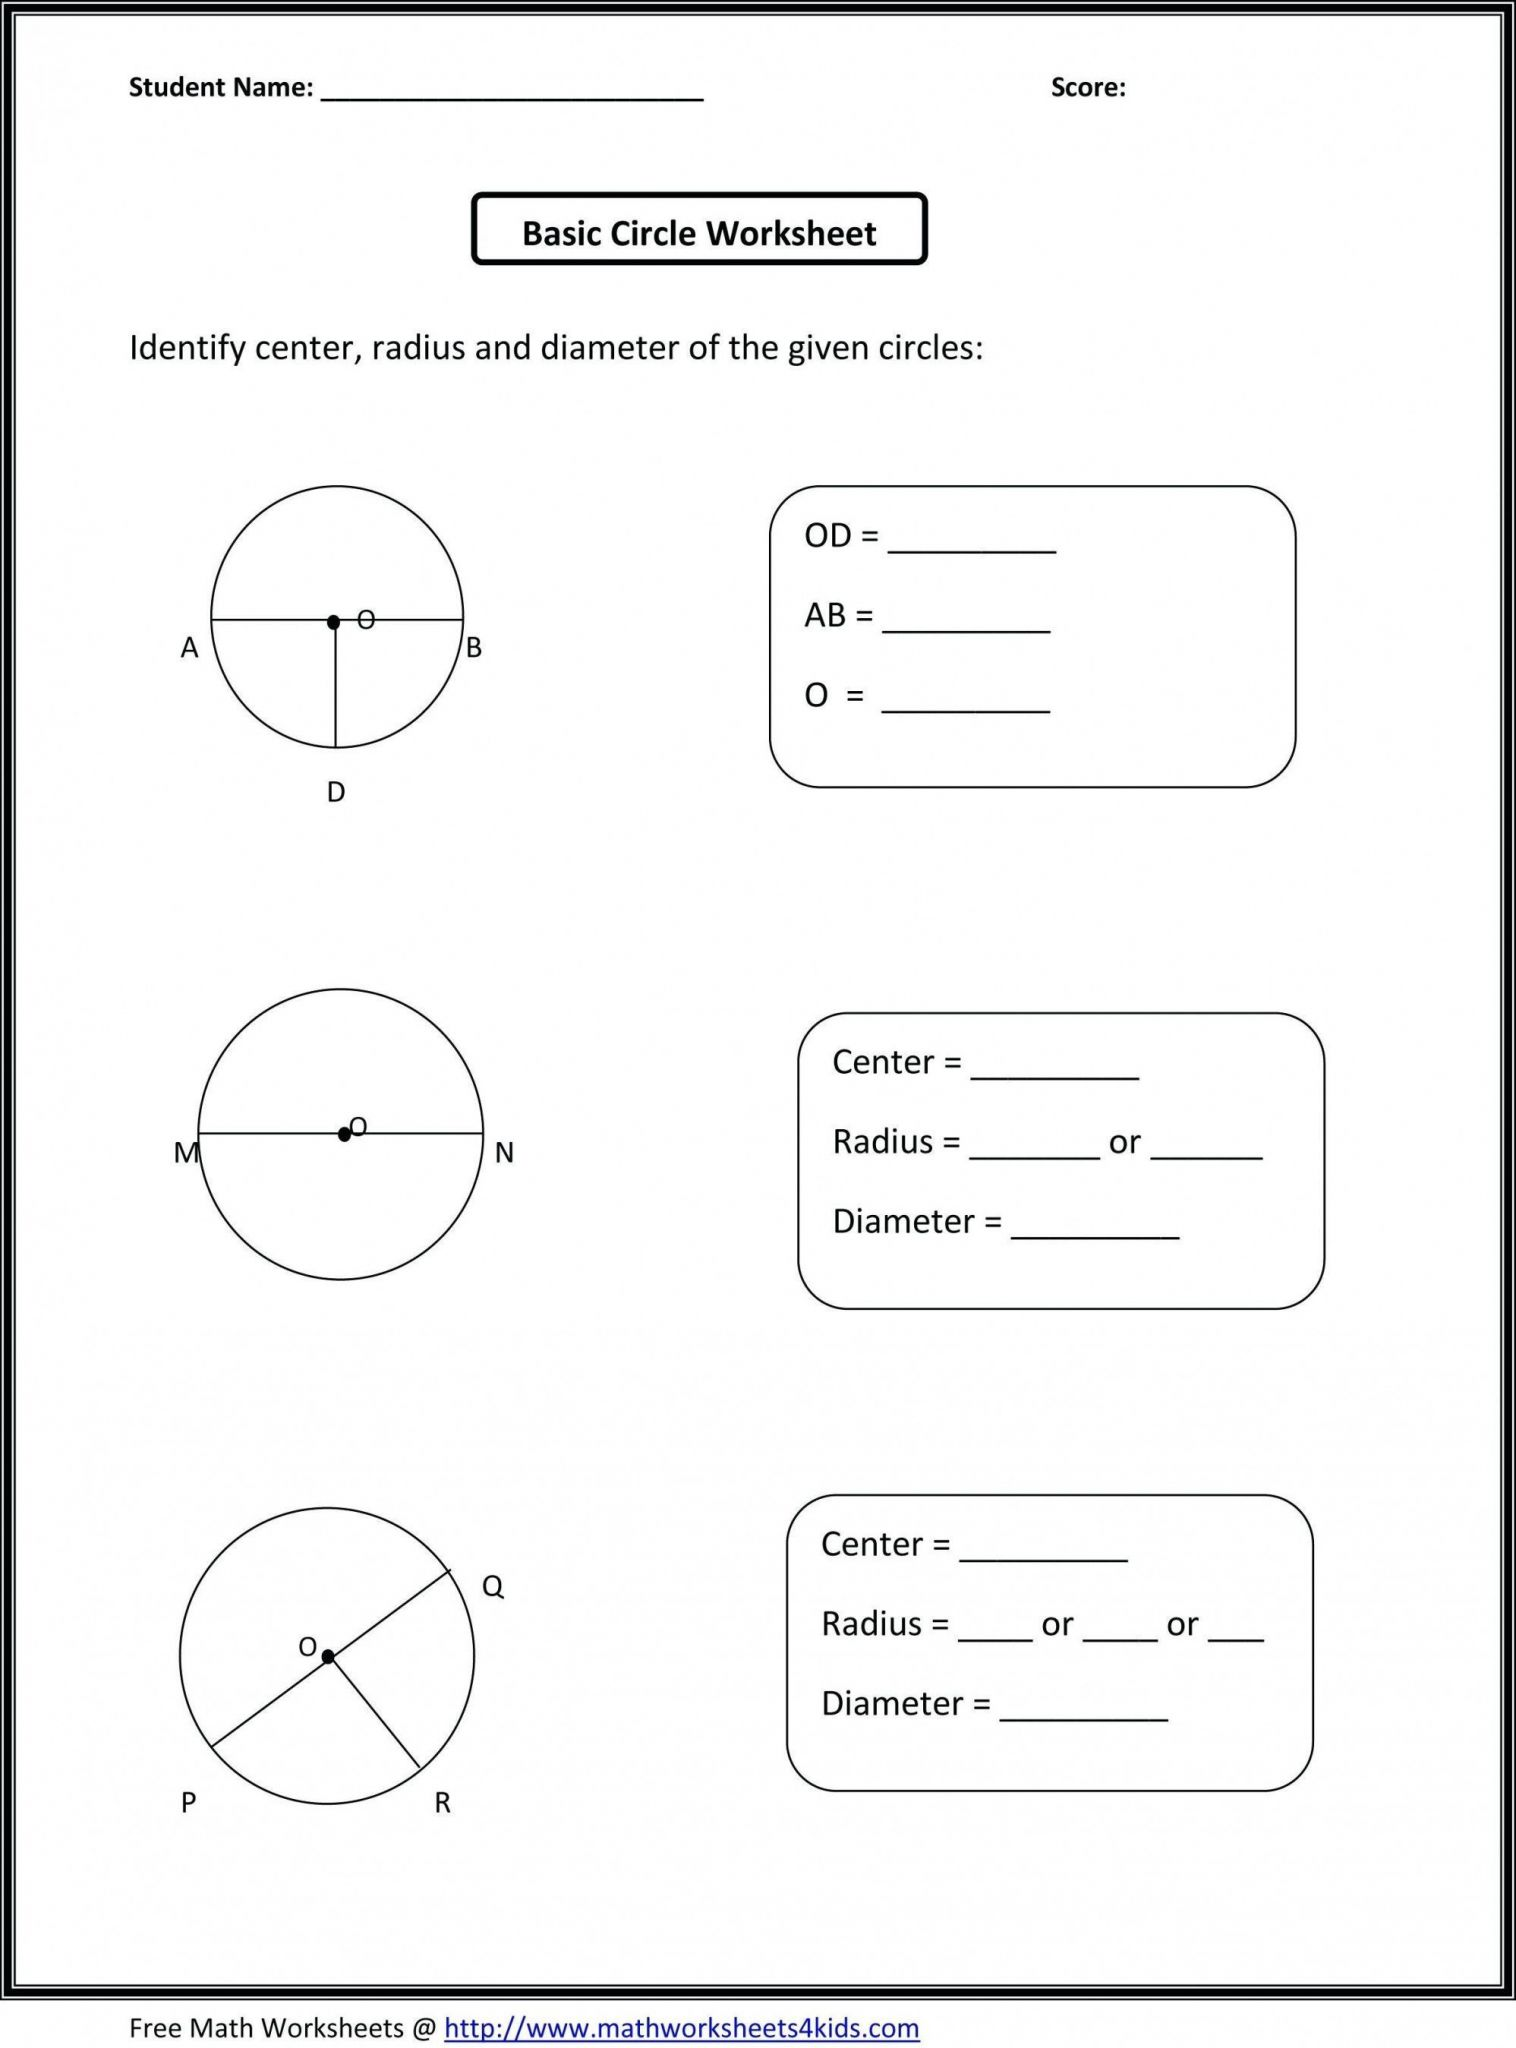 Cell Membrane Information Worksheet Answers